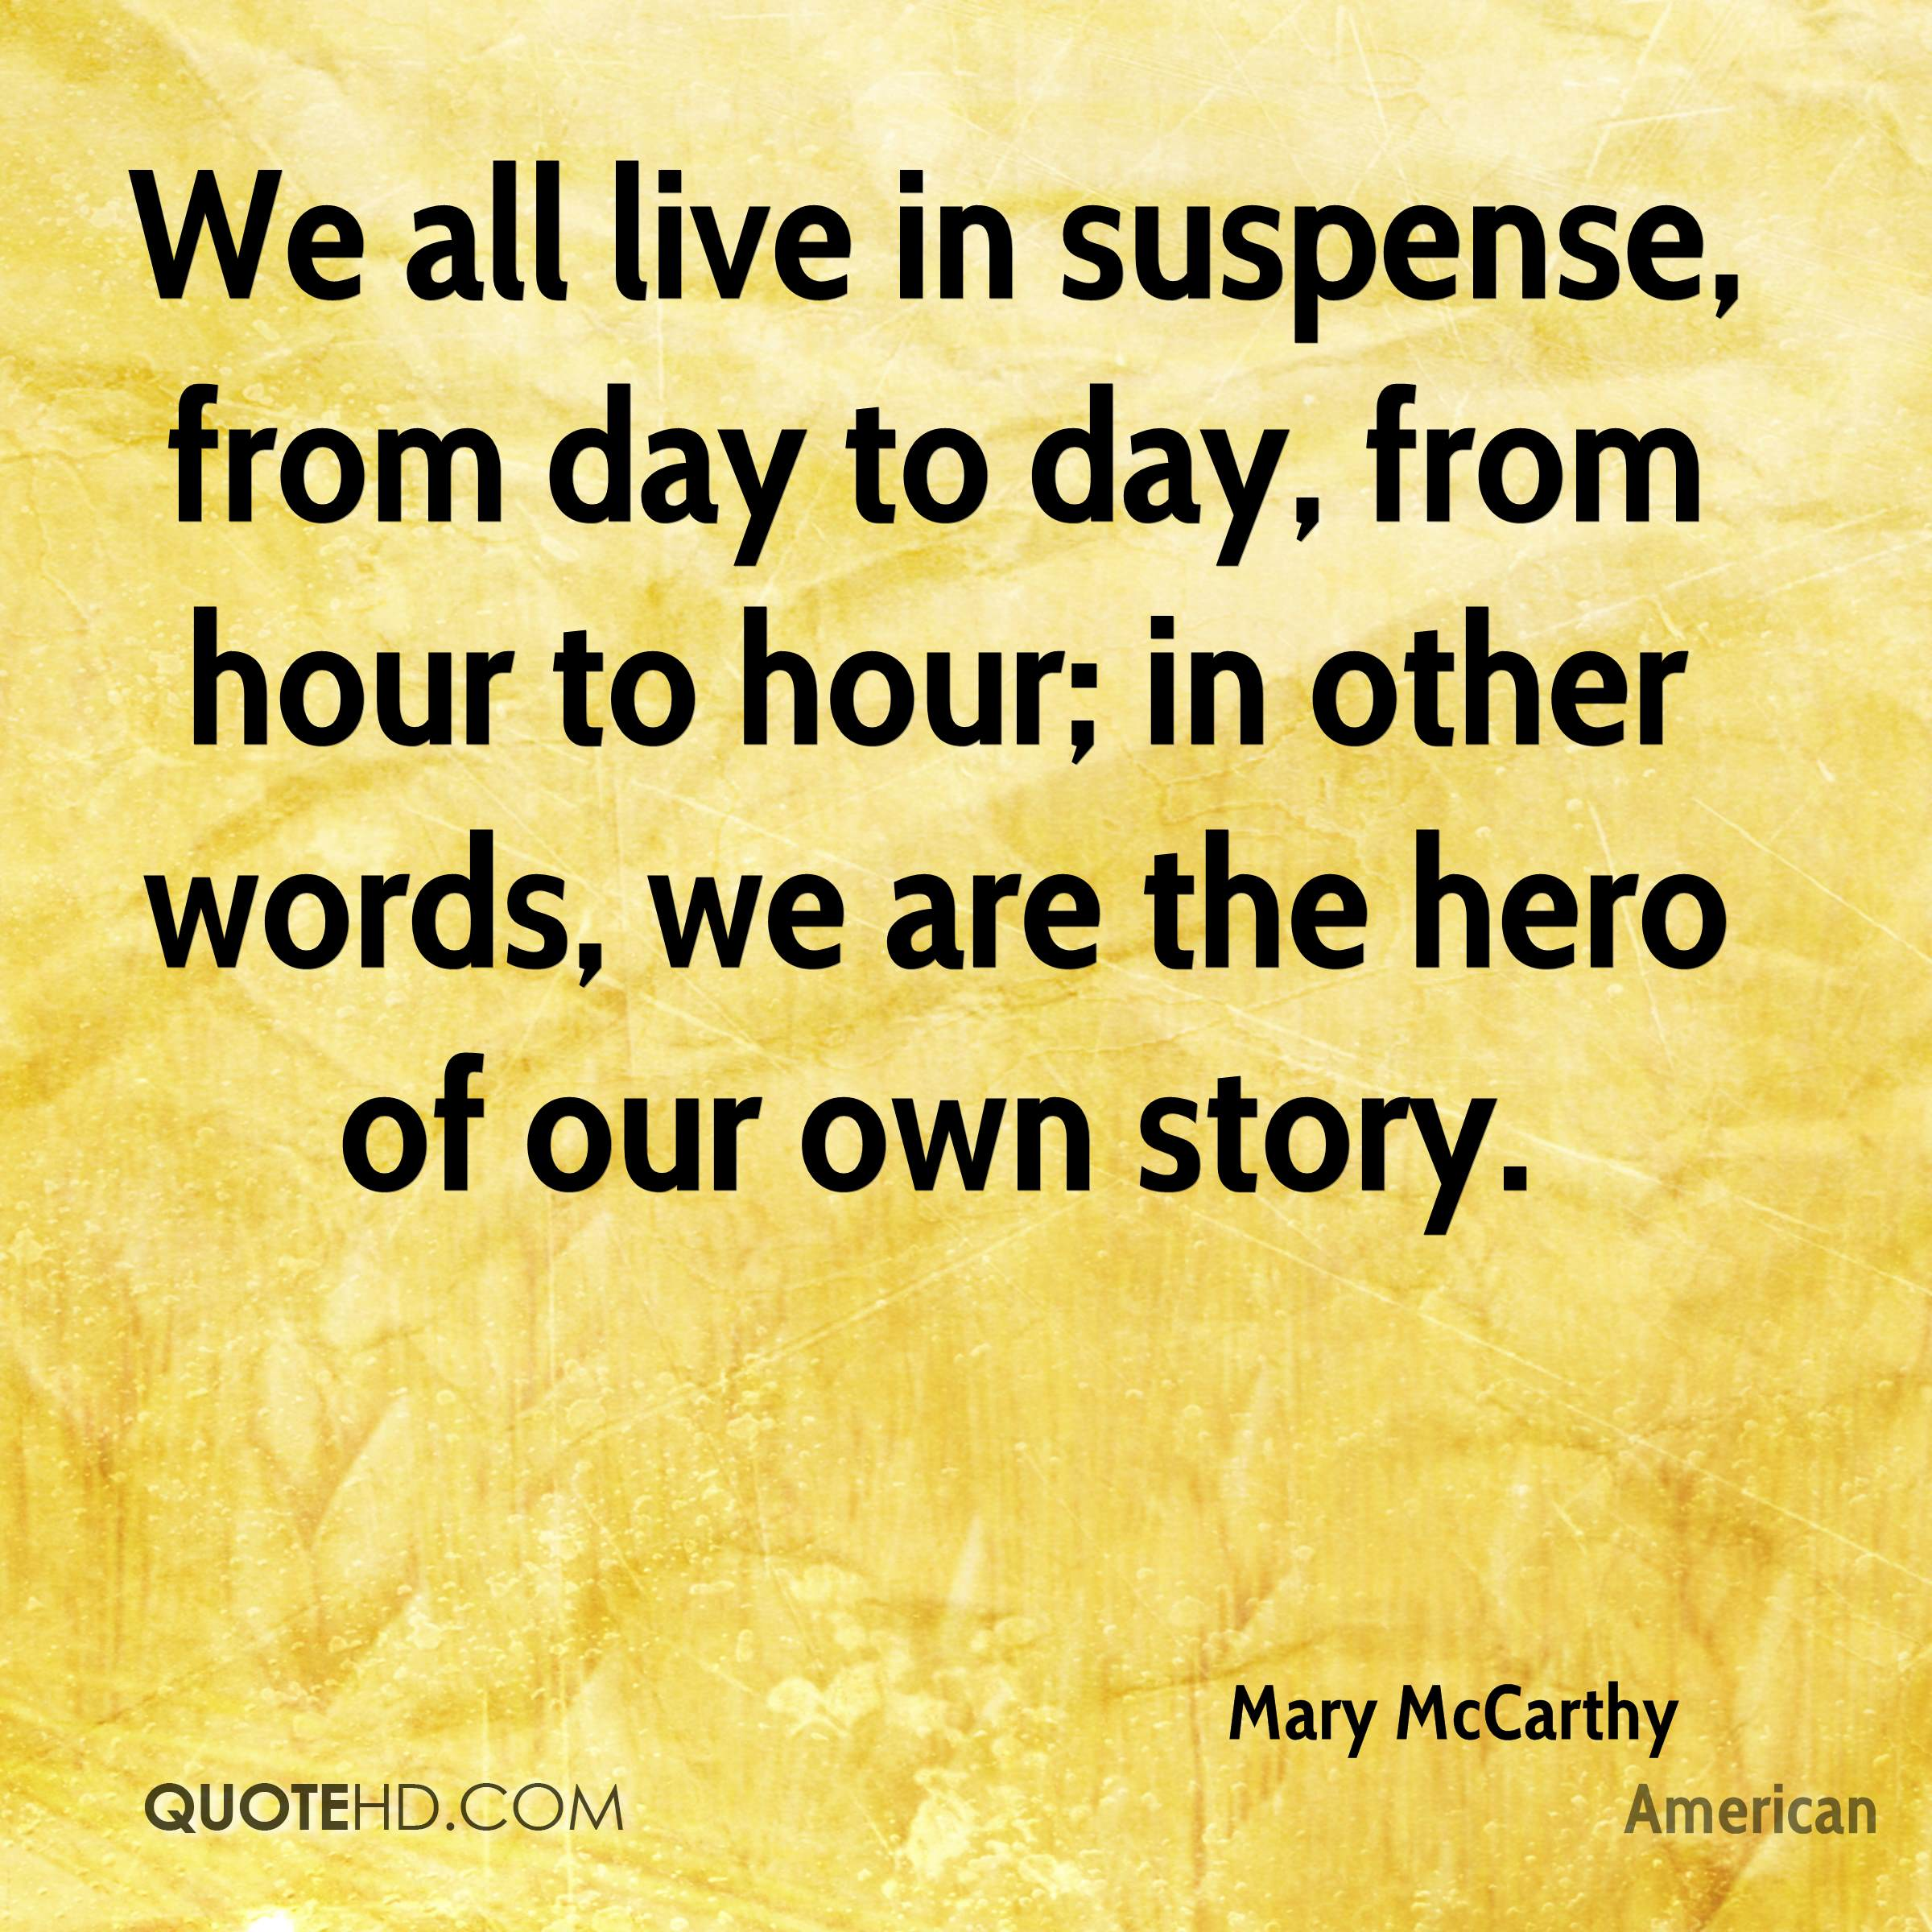 We all live in suspense, from day to day, from hour to hour; in other words, we are the hero of our own story.